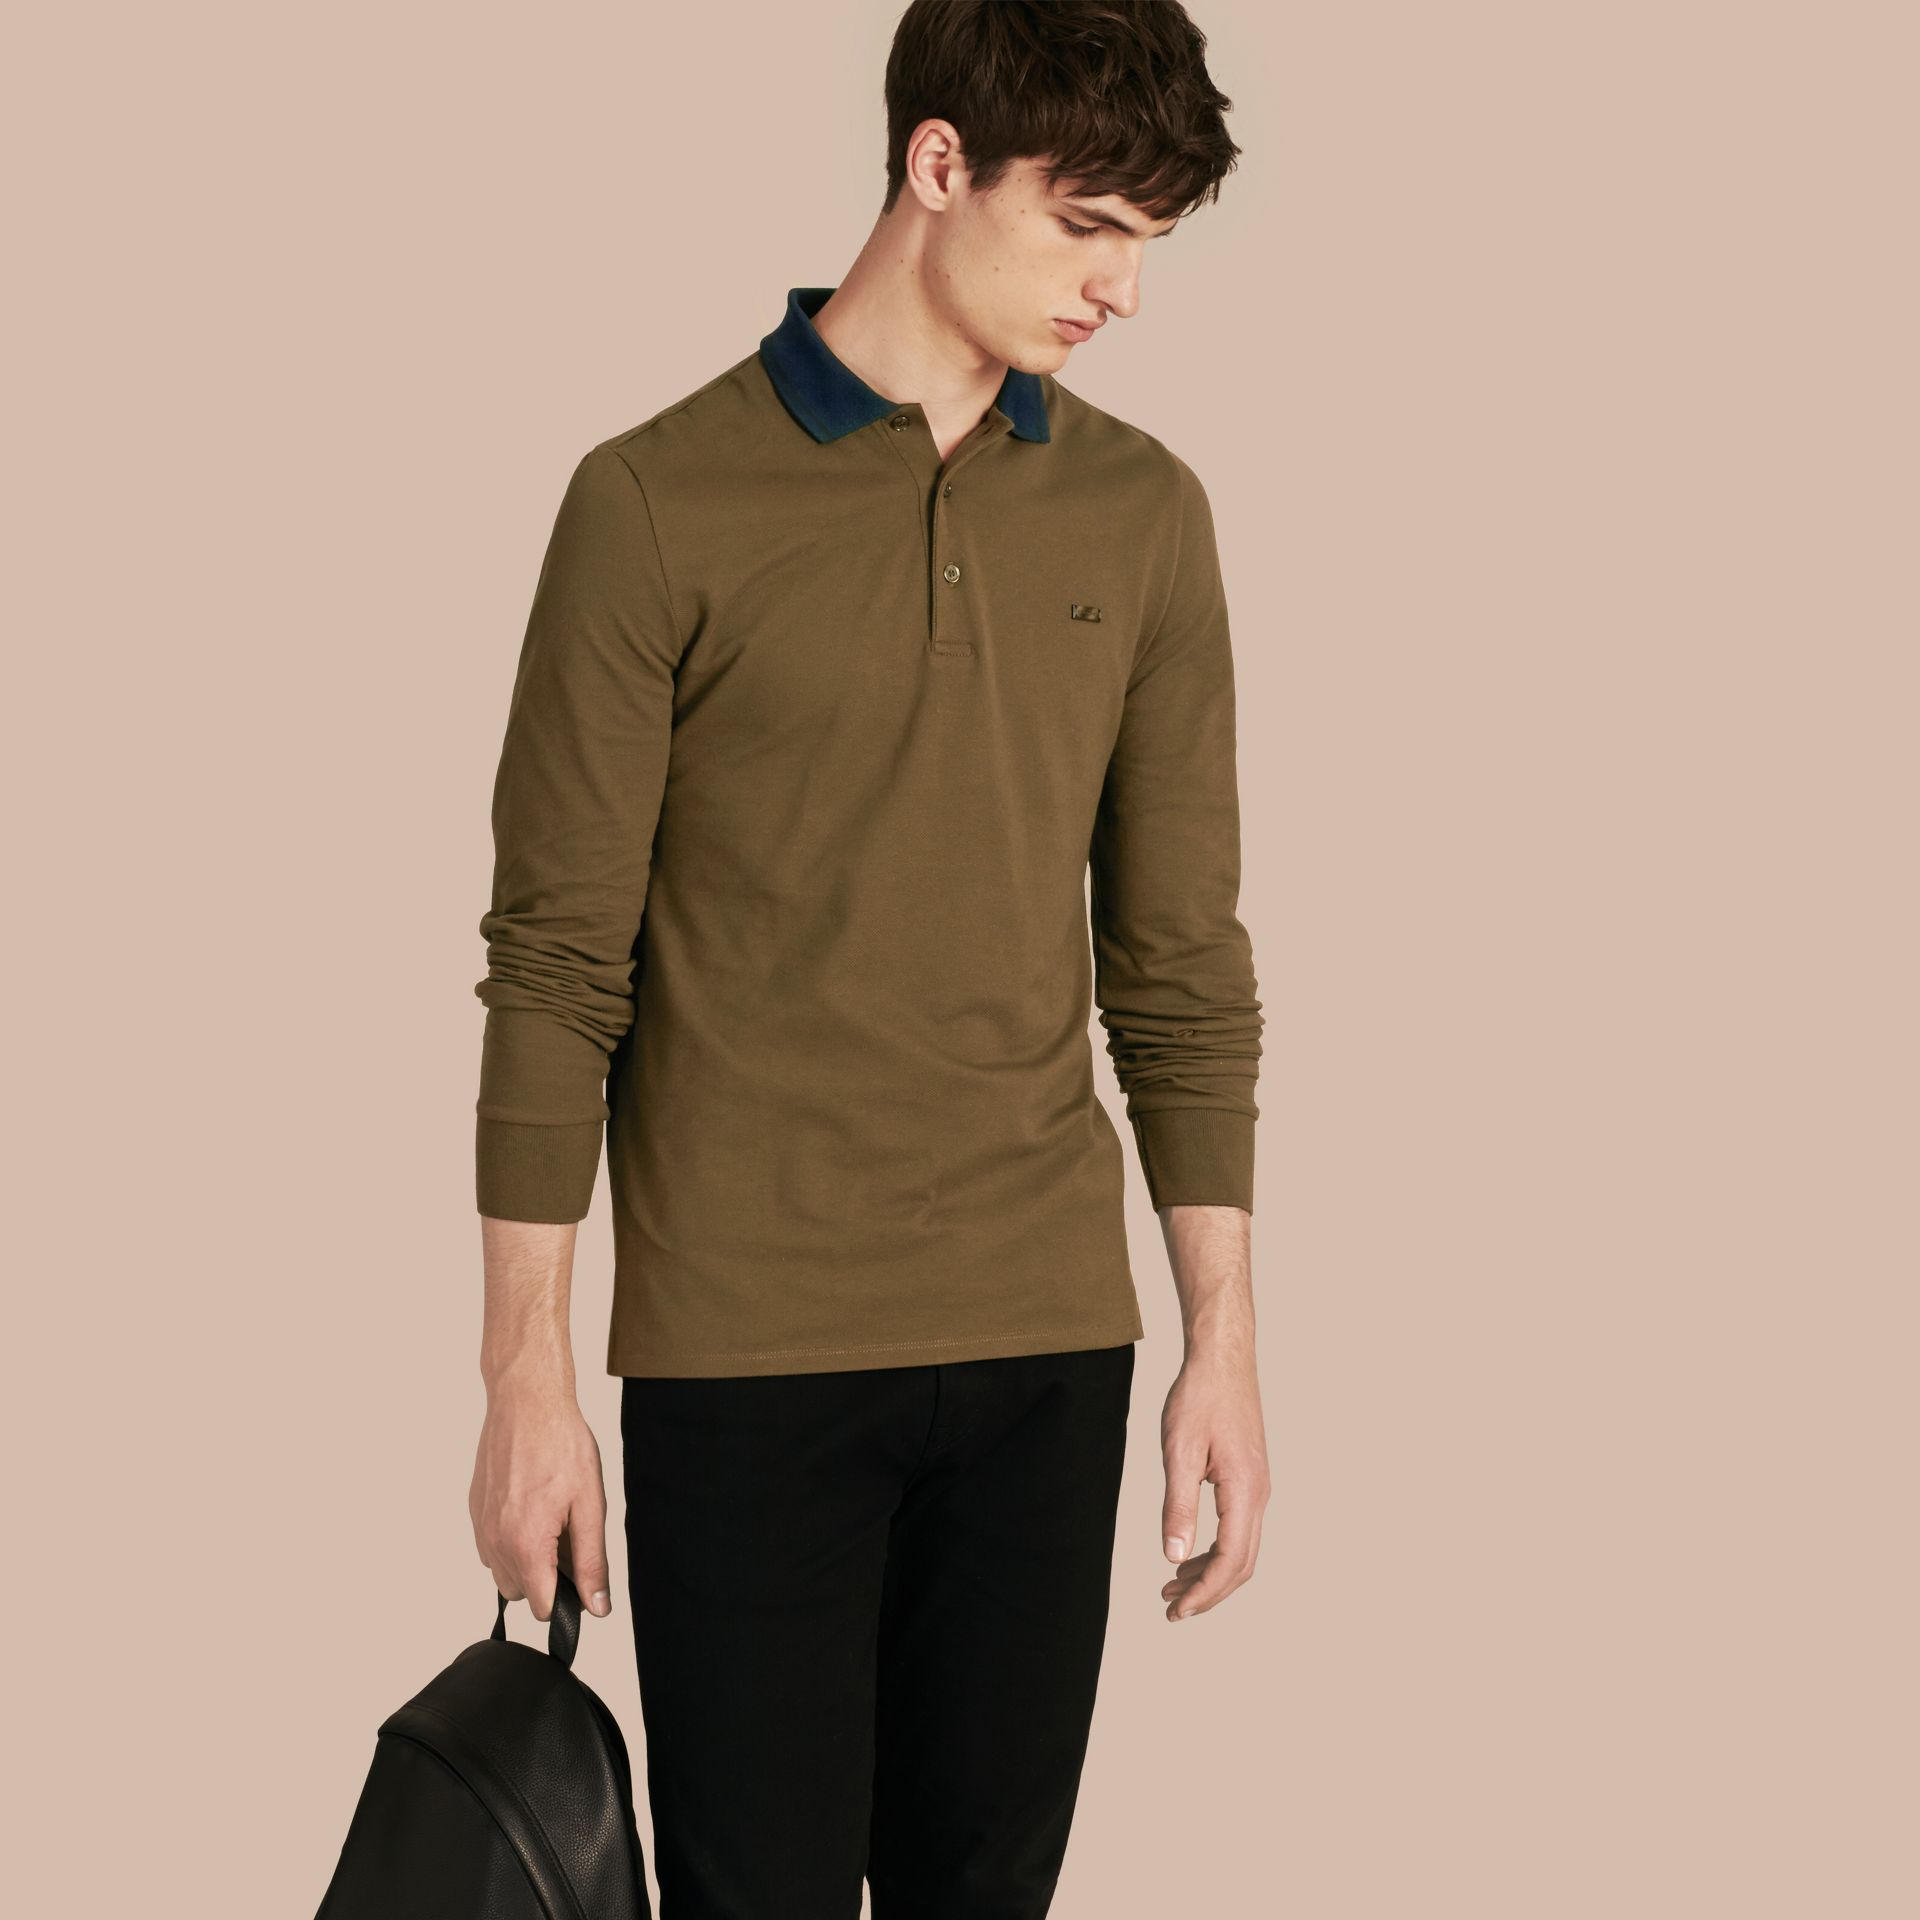 Military green/black Contrast Tipping Cotton Piqué Polo Shirt Military Green/black - gallery image 1